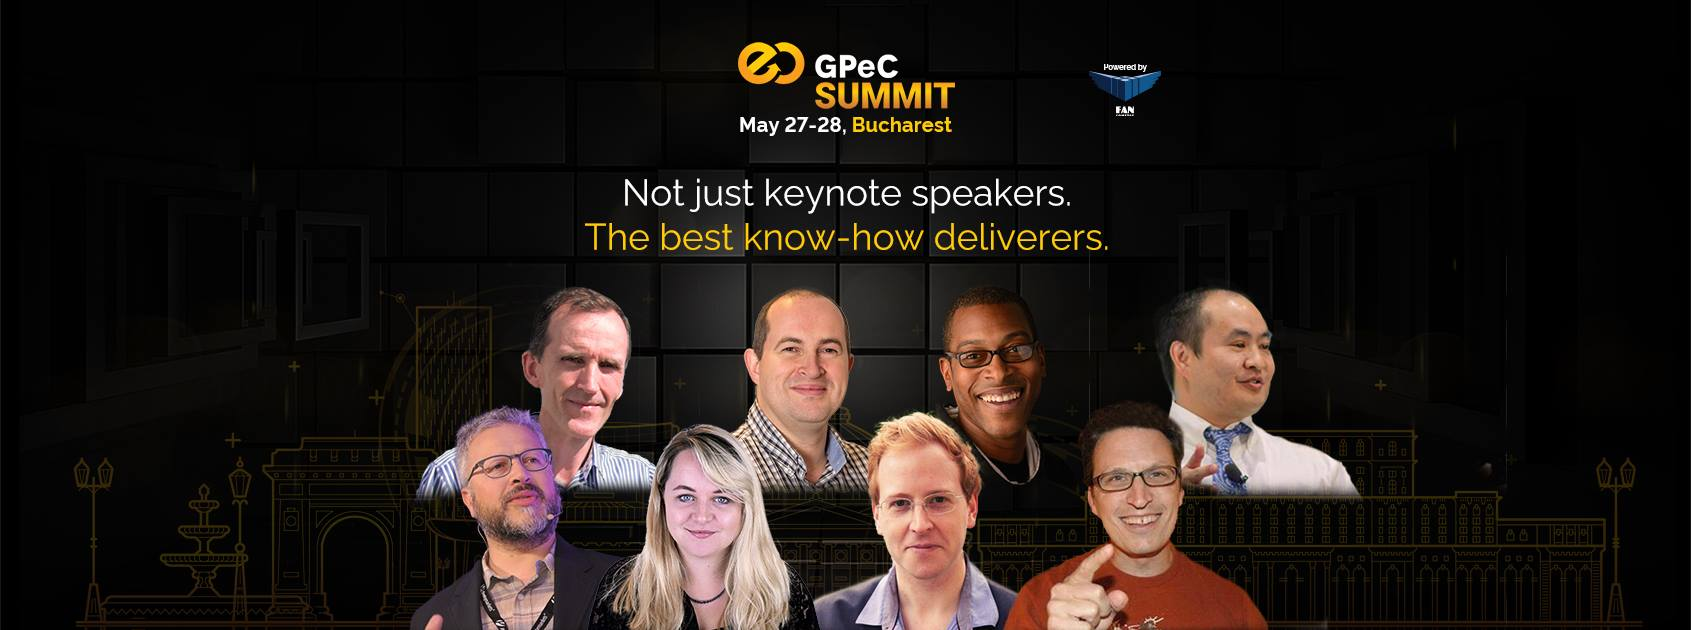 Speakeri internationali de exceptie la GPeC SUMMIT 27-28 Mai 2019 - Cel mai important eveniment de E-Commerce si Marketing Online din Romania si CEE